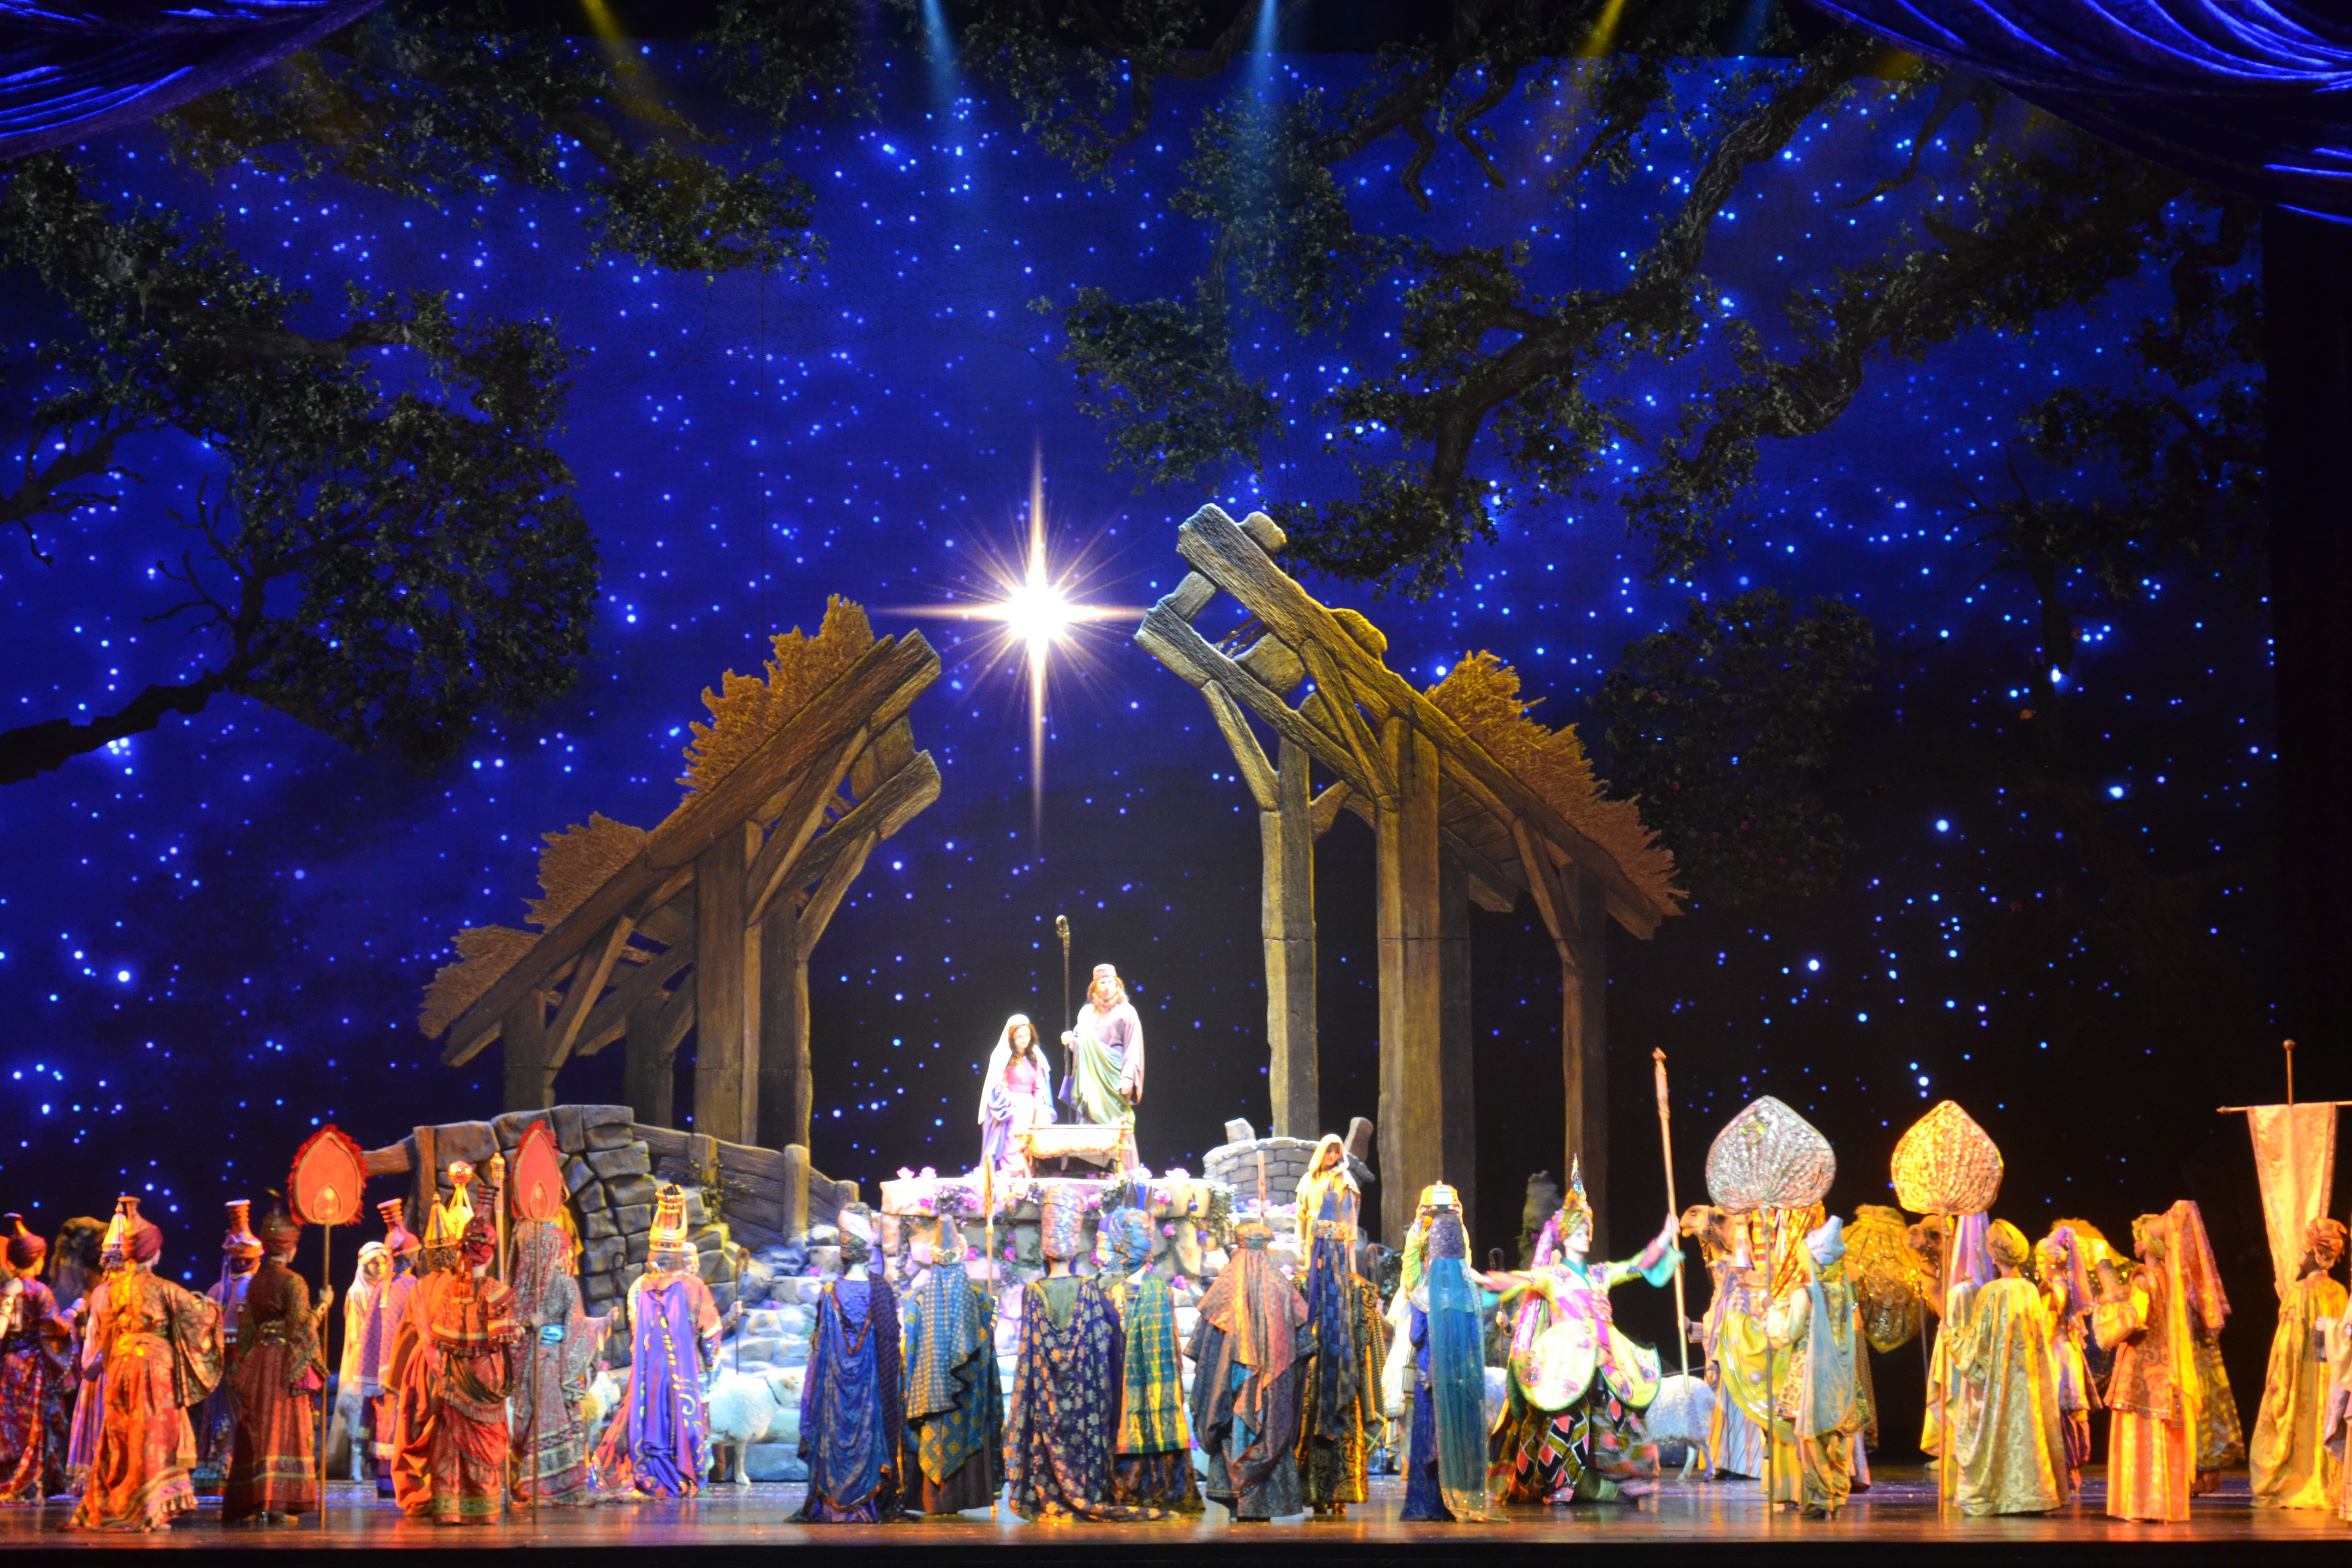 During the past week, I have seen many wonderful nativity scenes. The ...